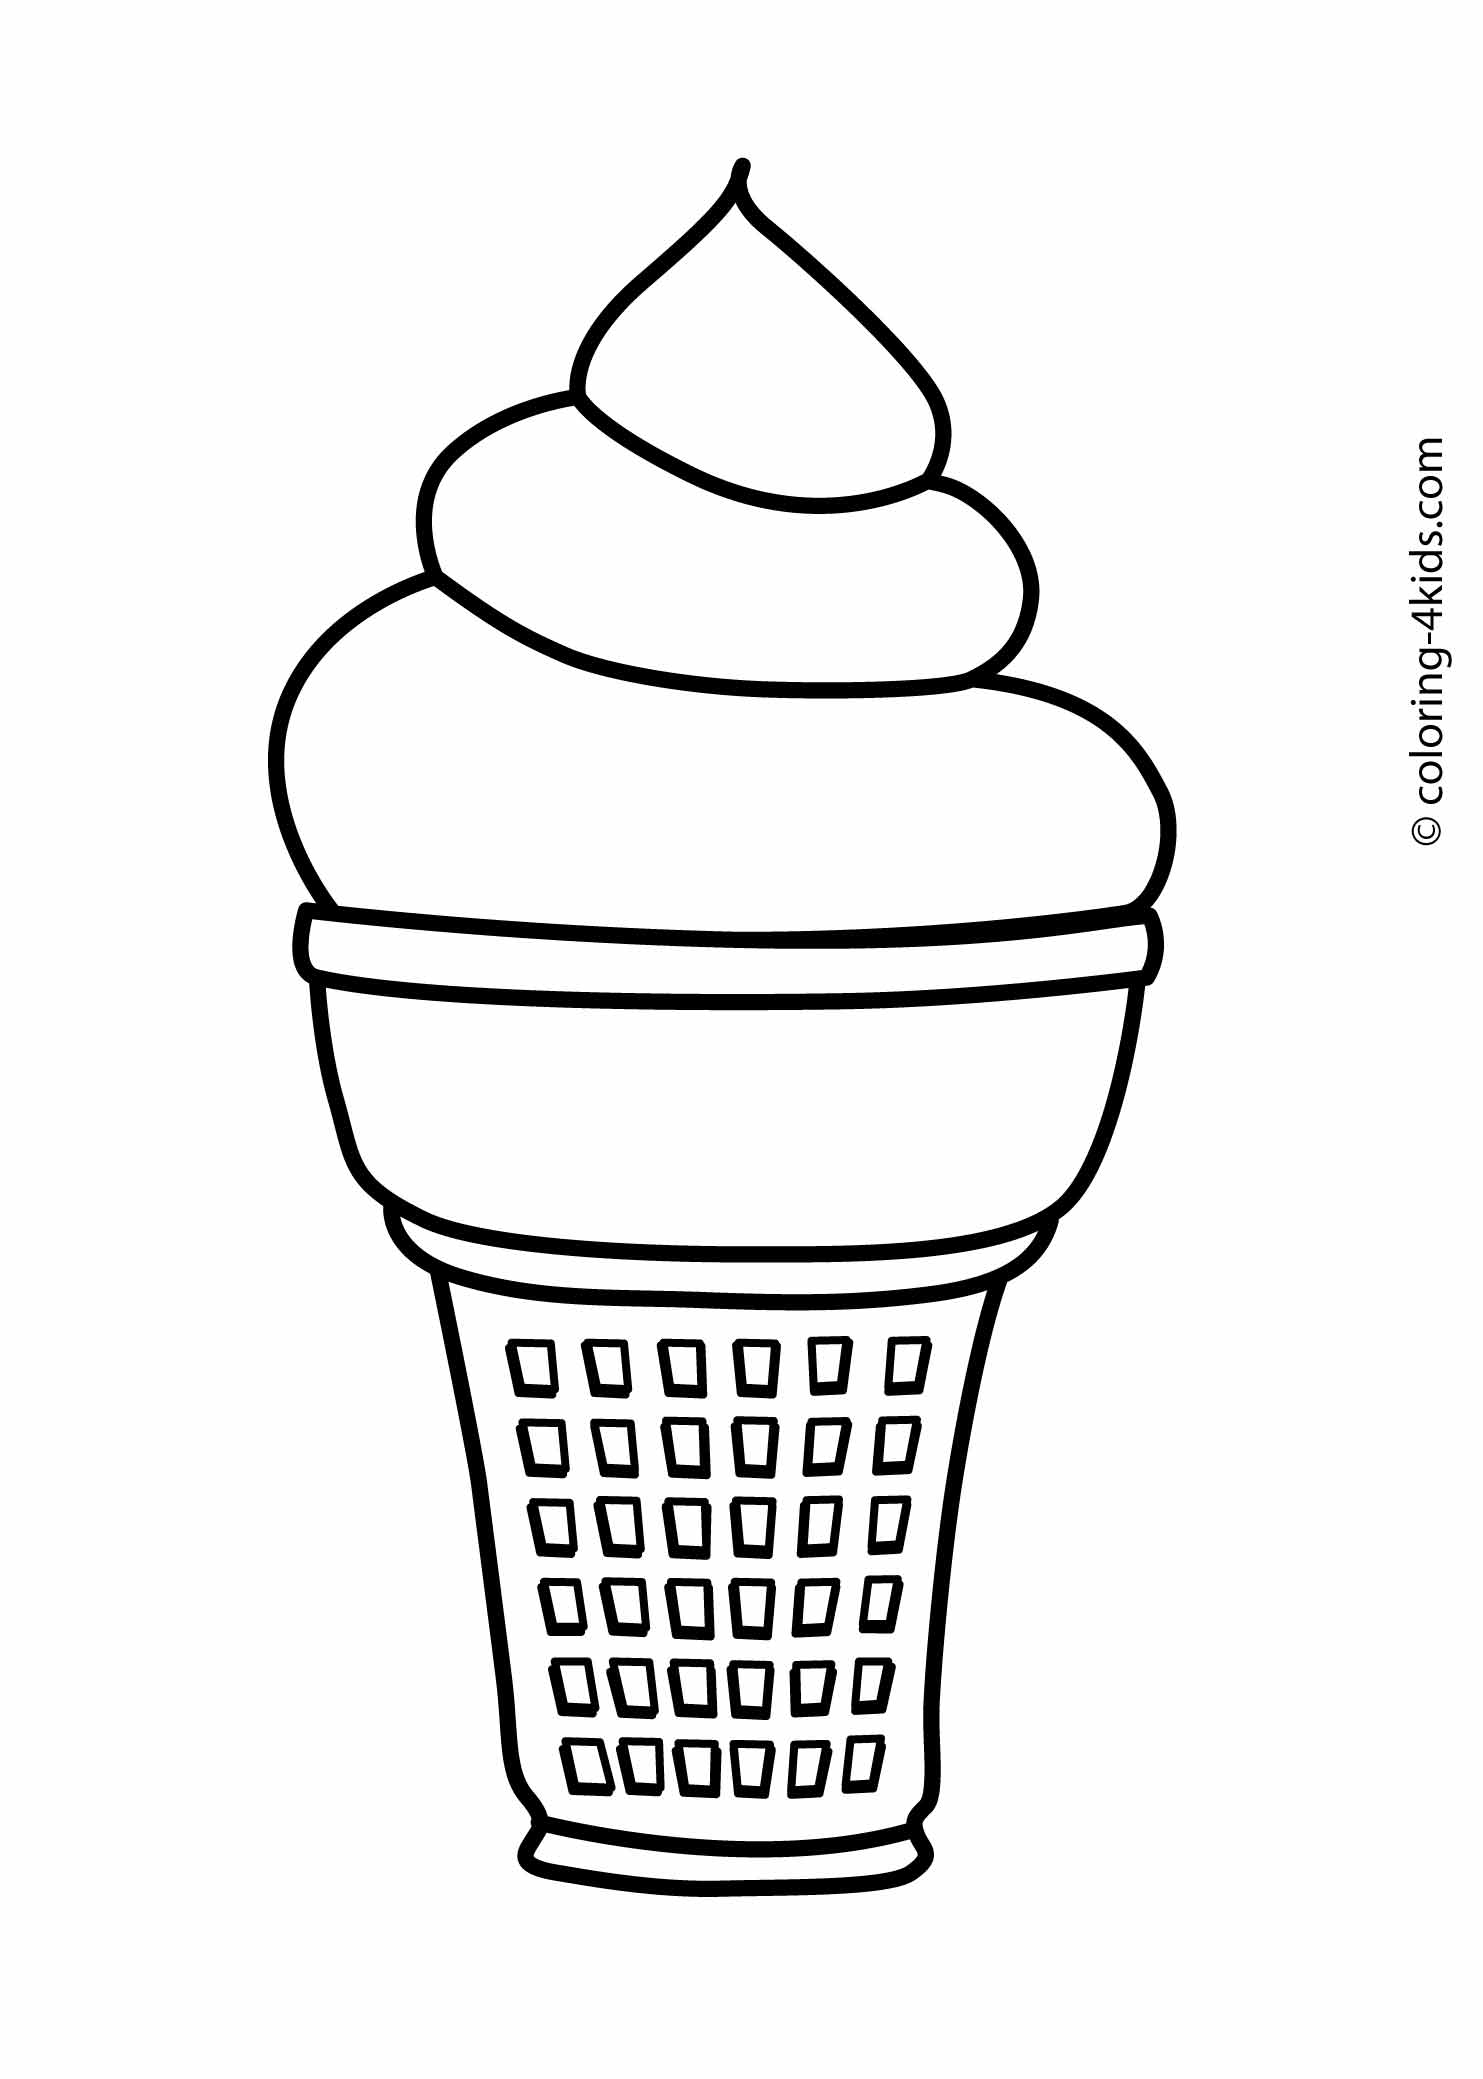 picture of ice cream cone to color icecream cone coloring page at getcoloringscom free picture cone ice cream of color to